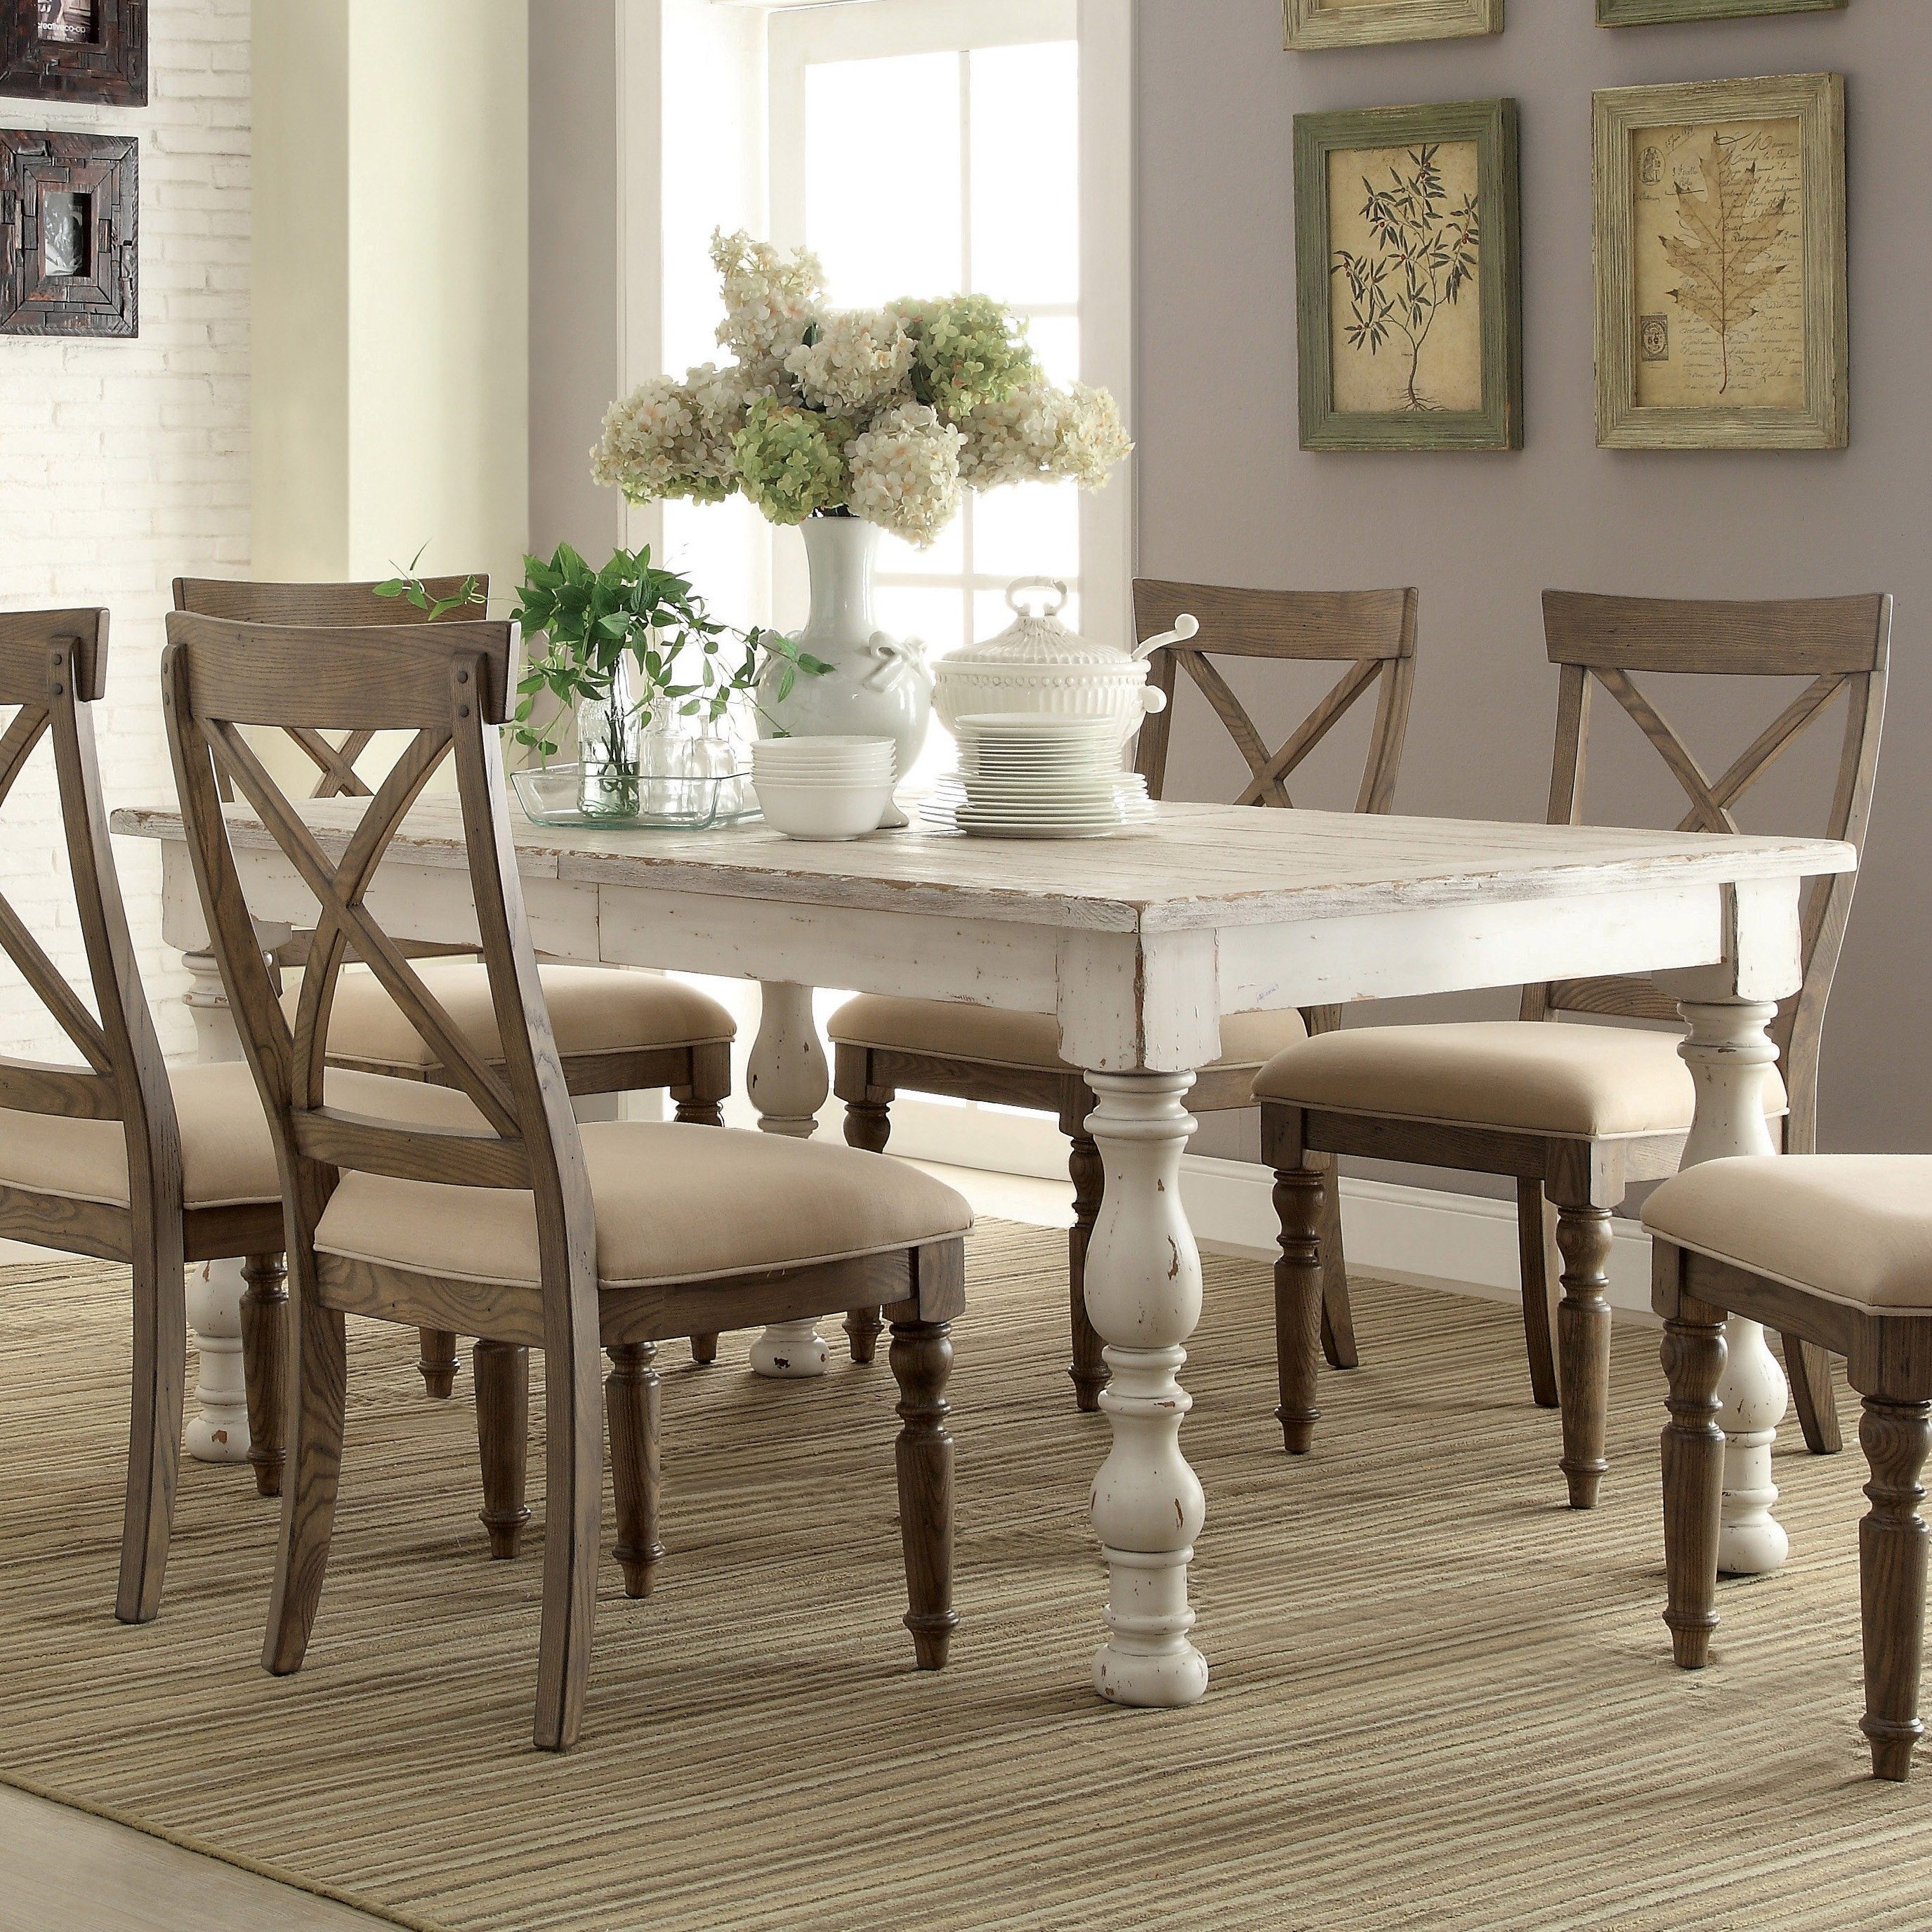 Aberdeen wood rectangular dining table and chairs in for Dining table and chairs